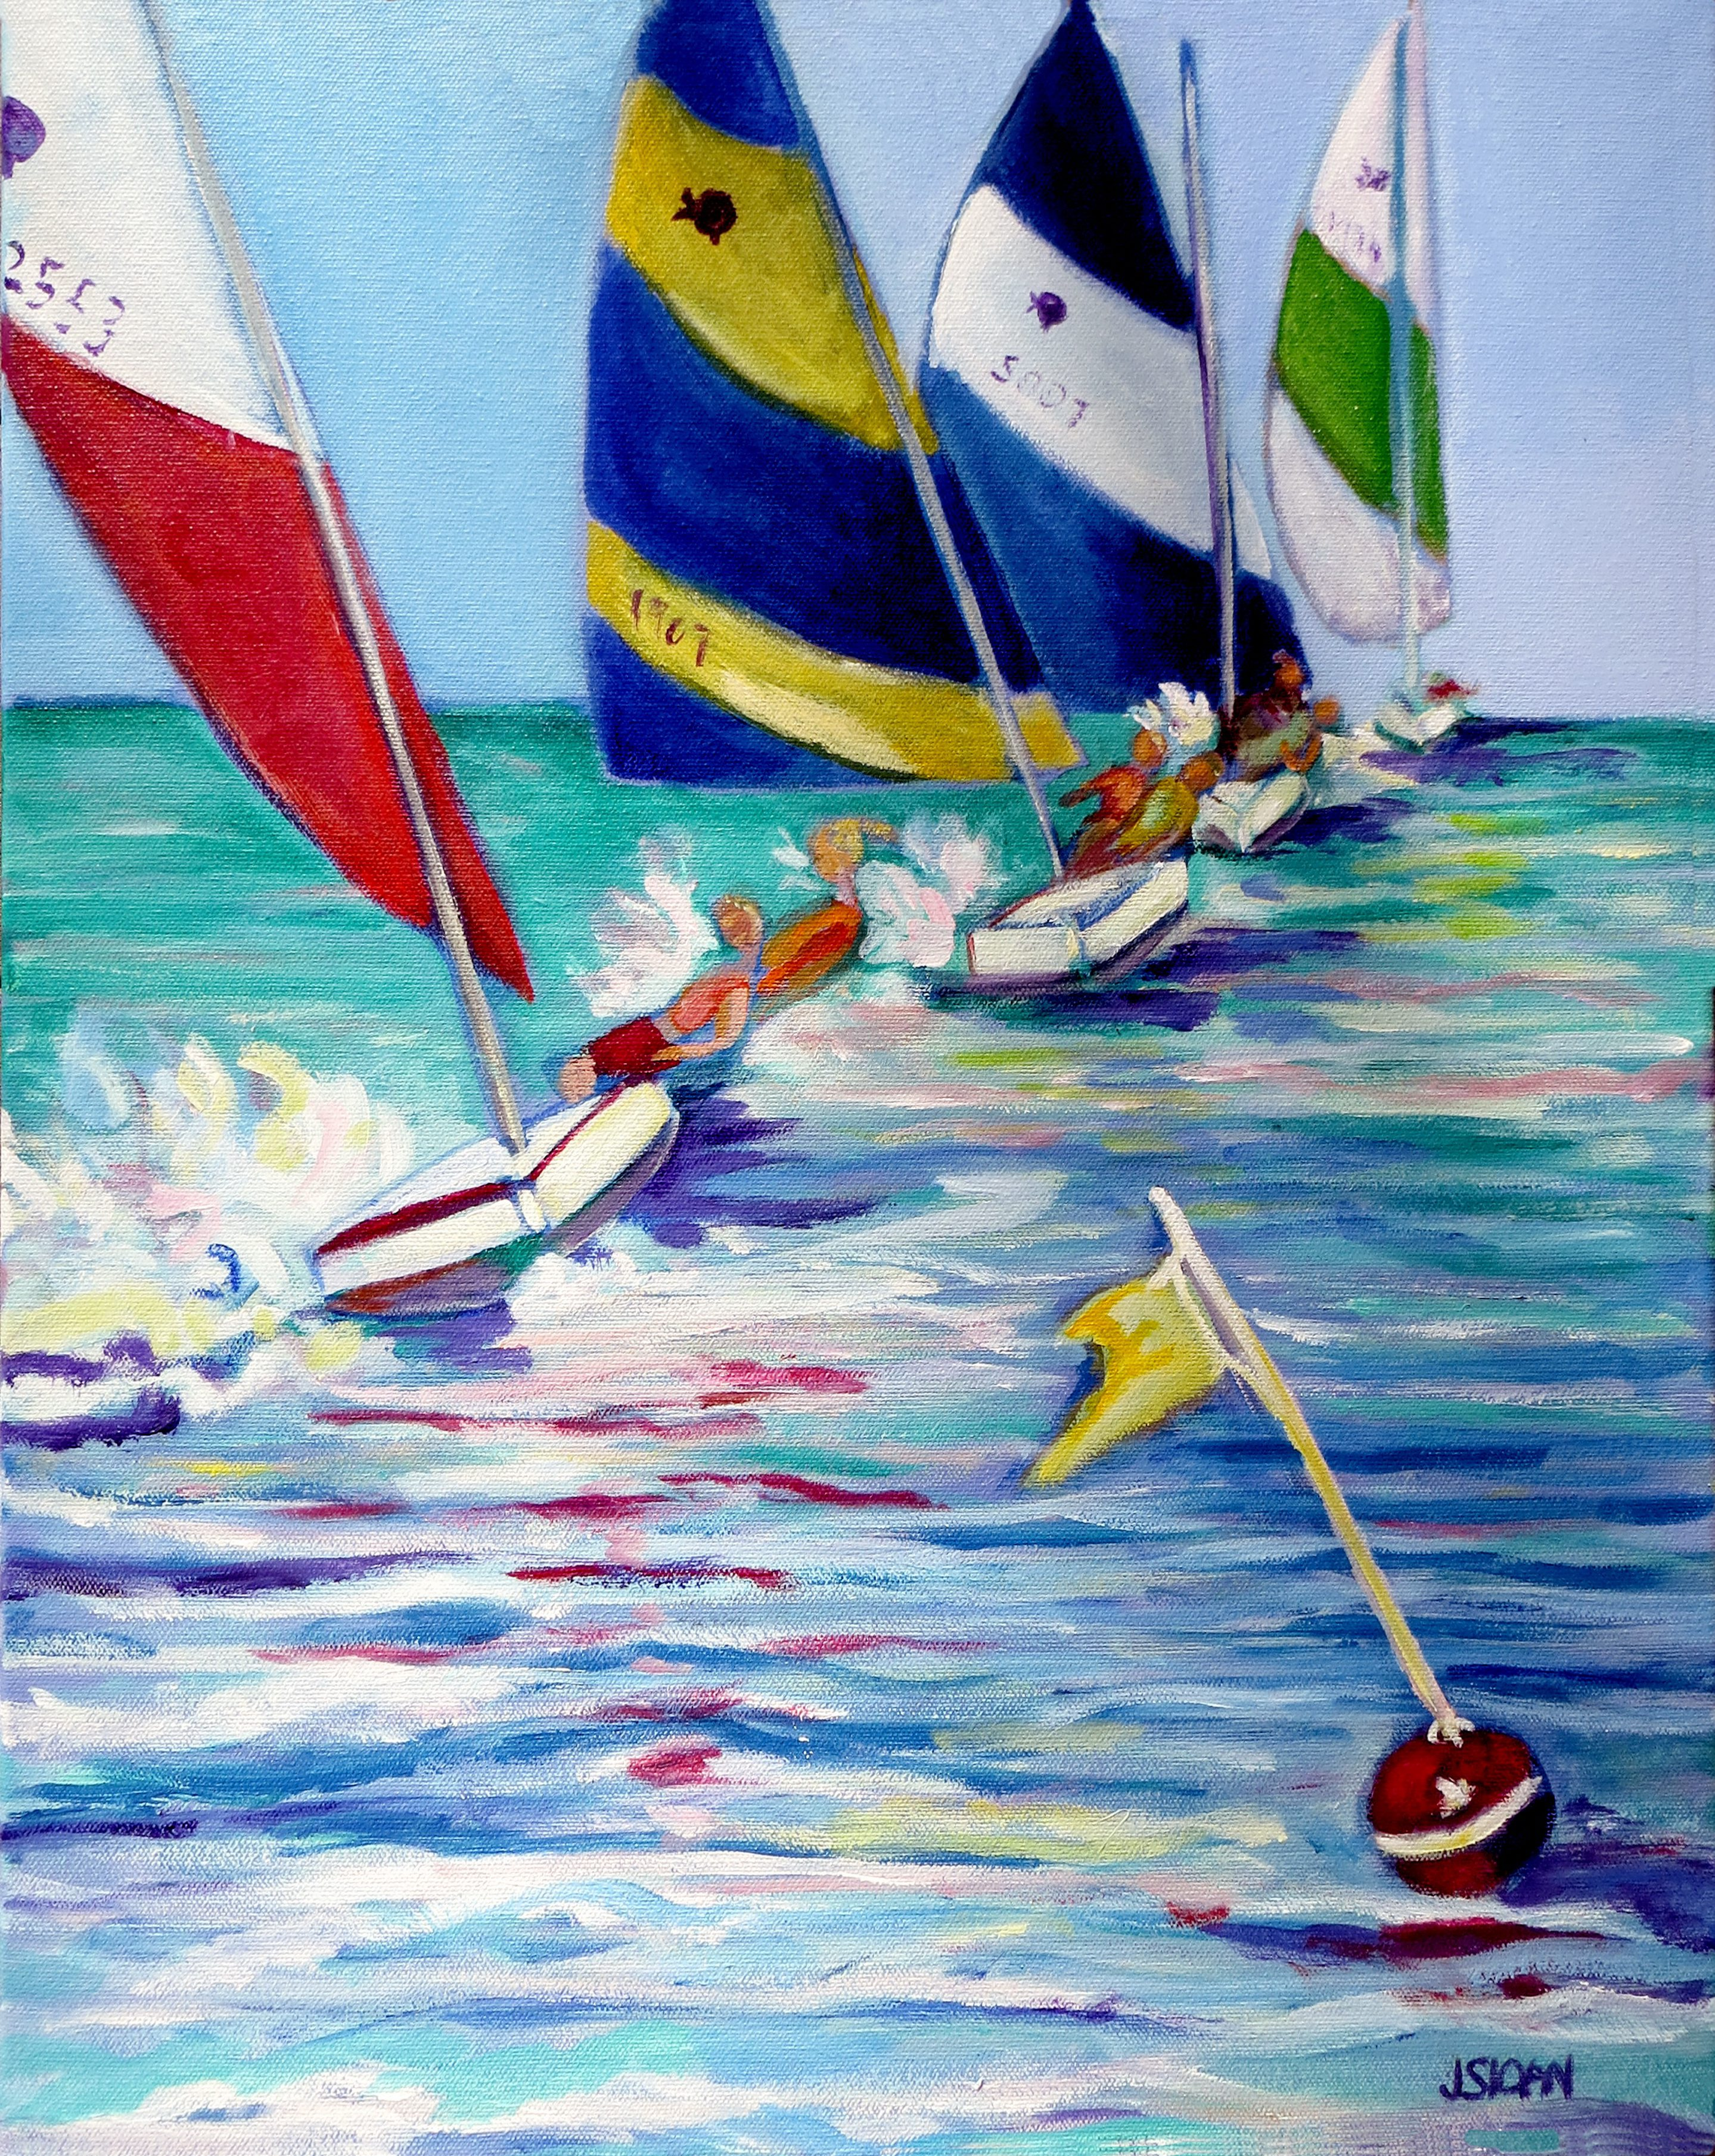 """First at the Mark,"" a painting by Joanne Sloan, is on view in the Jewish Community Center on Delaware Avenue through Aug. 26."